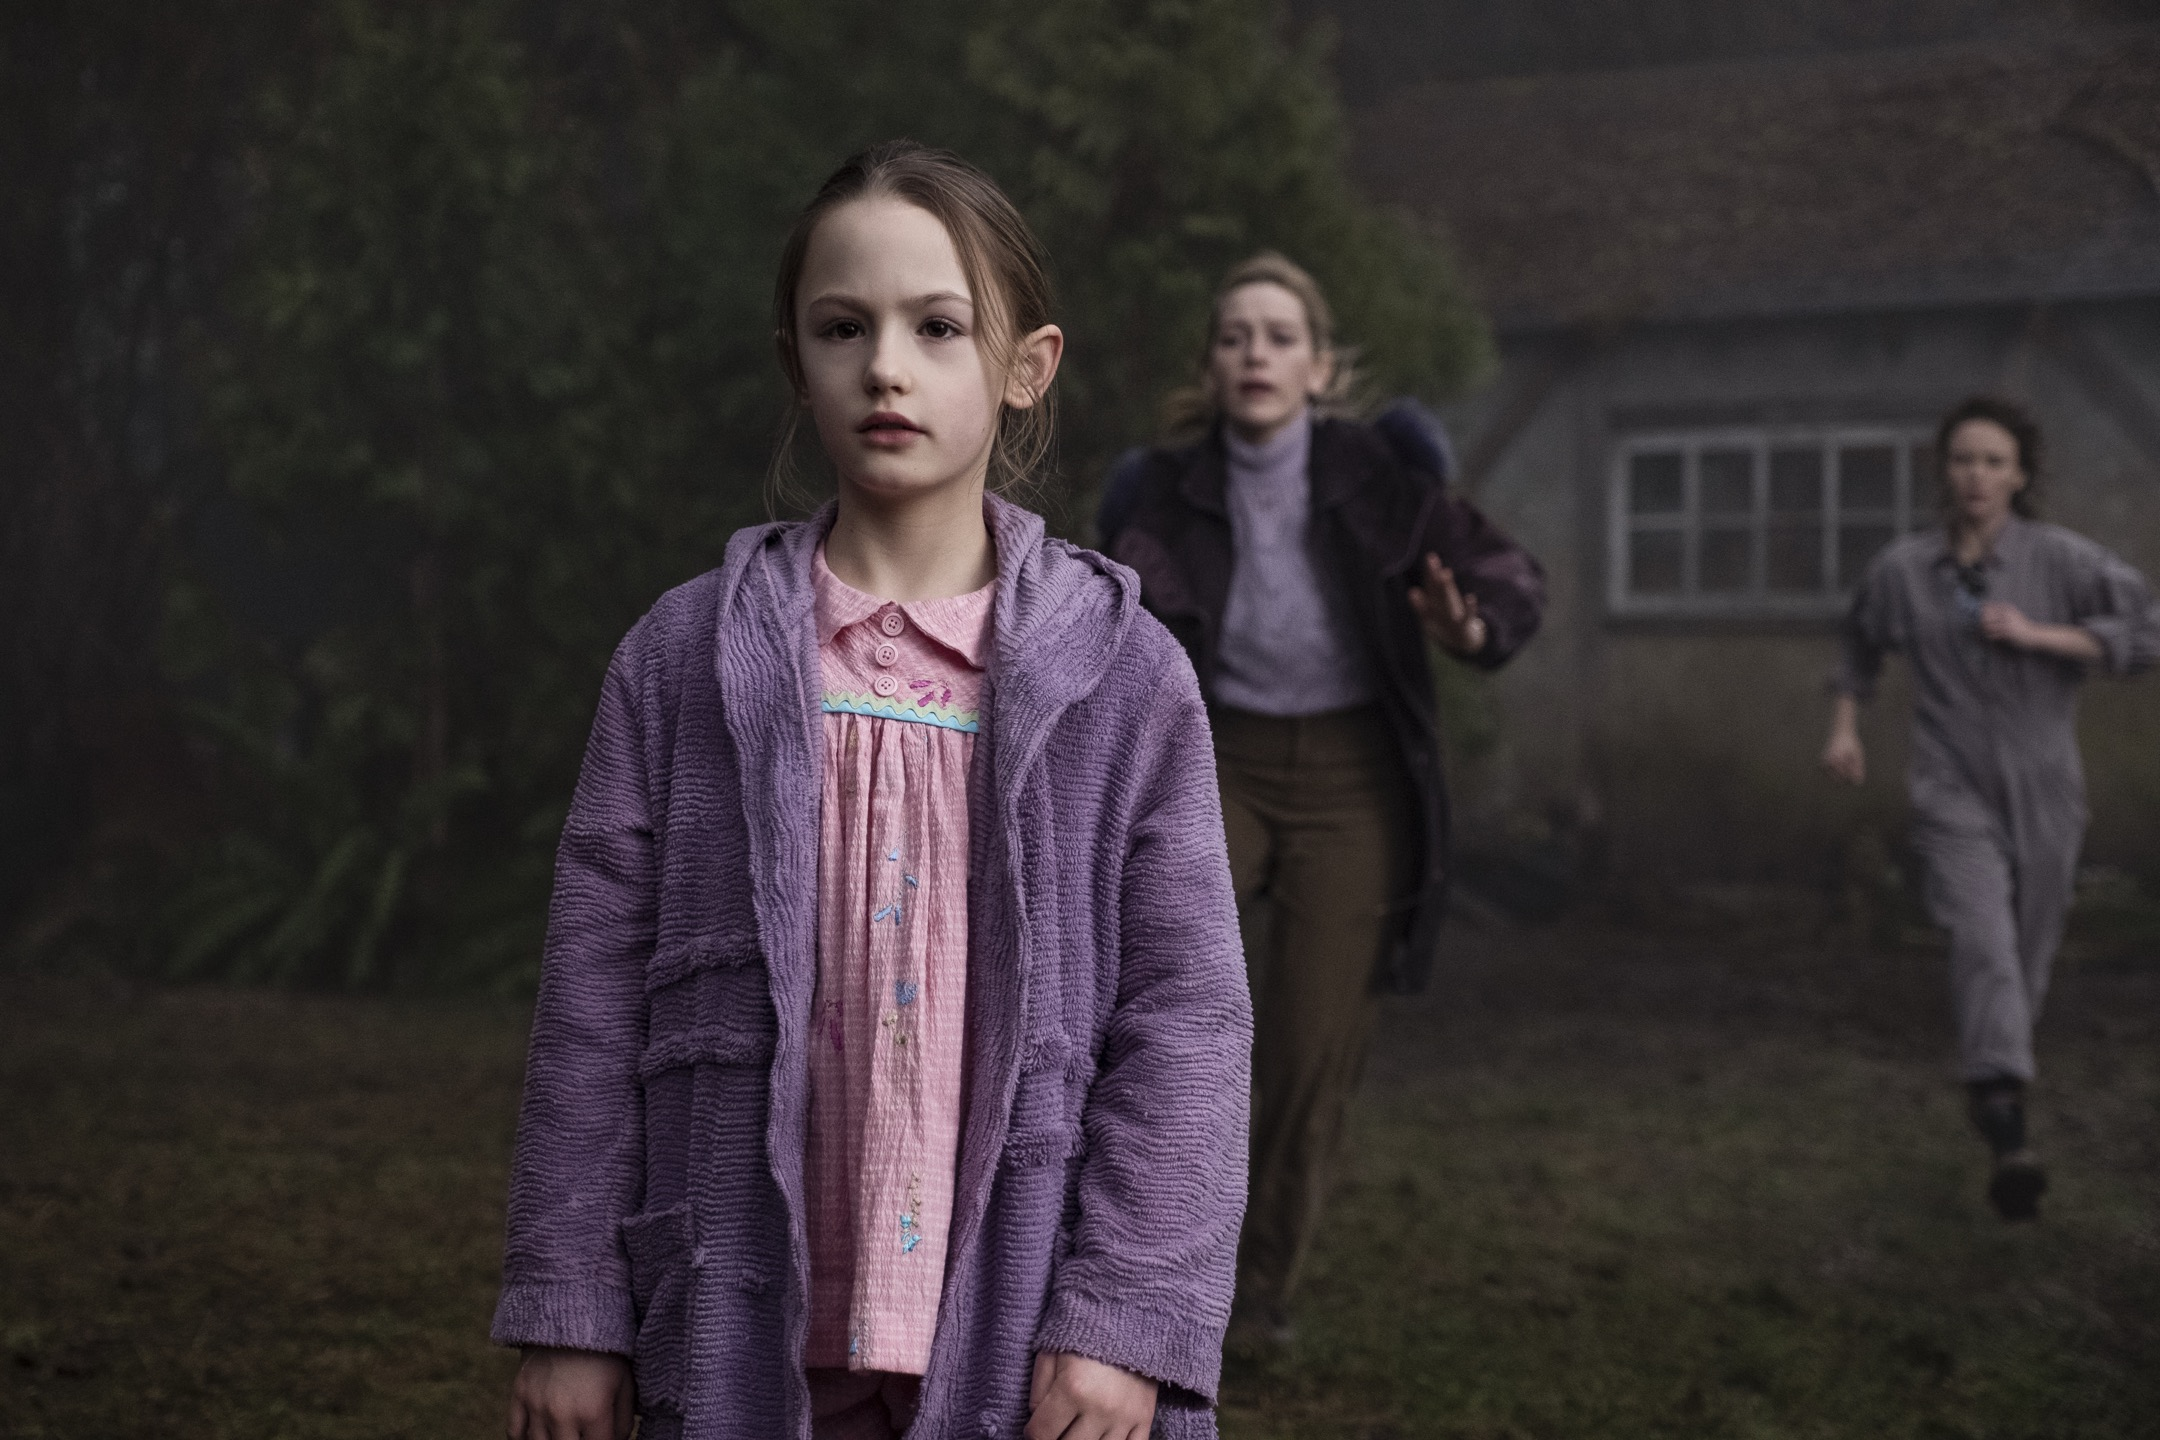 THE HAUNTING OF BLY MANOR (L to R) AMELIE BEA SMITH as FLORA, VICTORIA PEDRETTI as DANI, and AMELIA EVE as JAMIE in episode, 206 of THE HAUNTING OF BLY MANOR. Cr. EIKE SCHROTER/NETFLIX © 2020